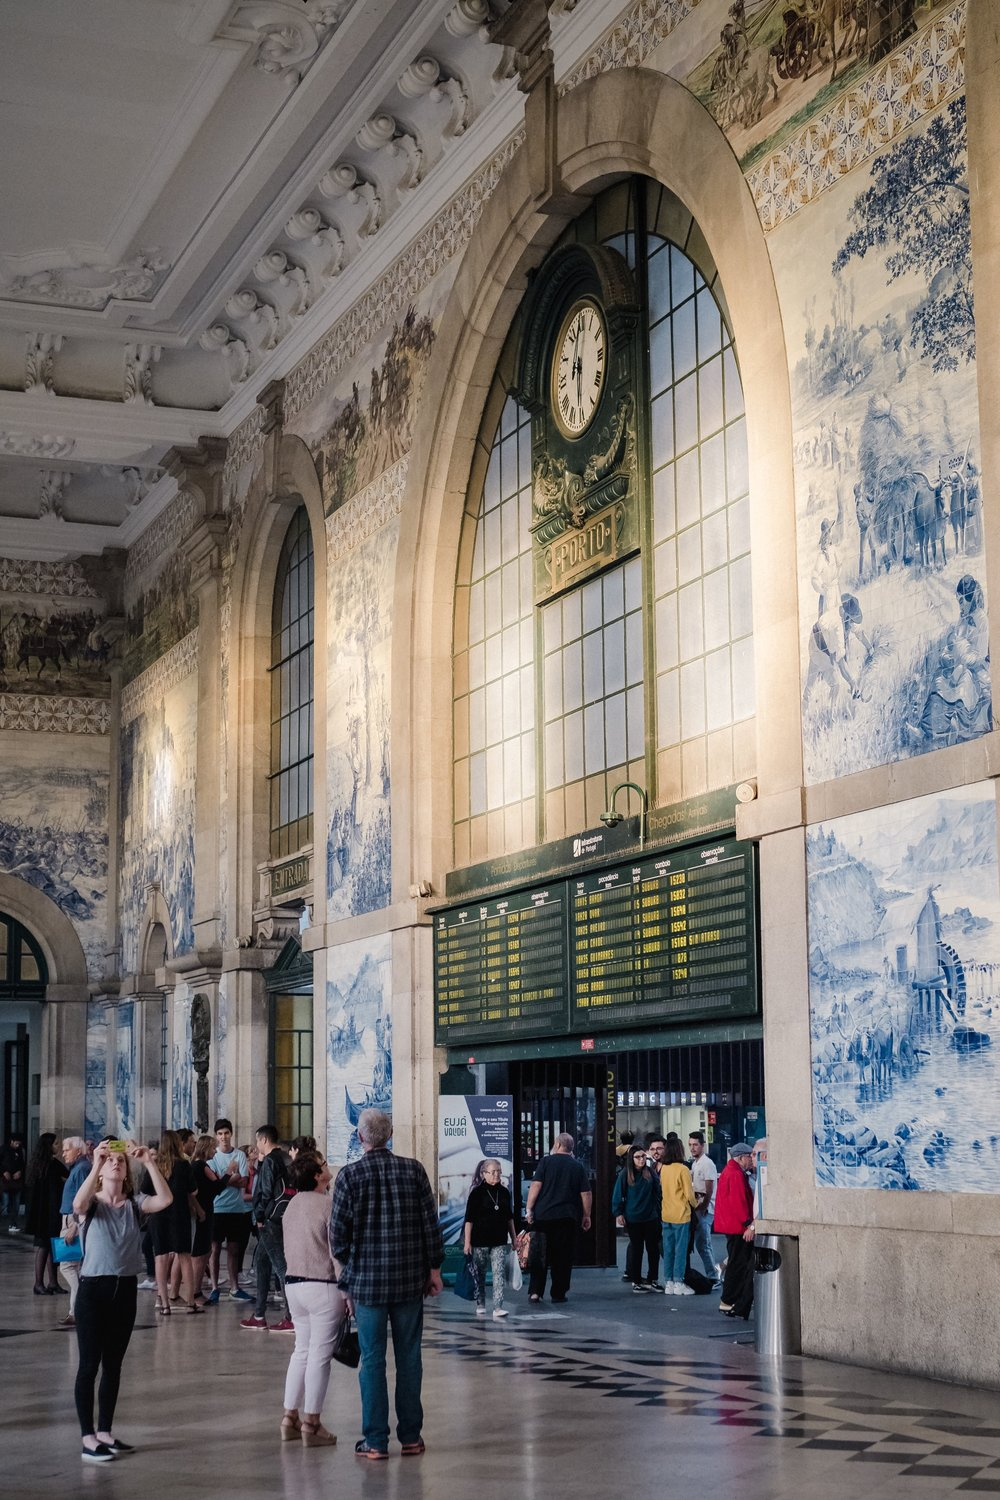 Porto's train station is a beautiful example of the tile that can be found throughout Porto (and Lisbon).